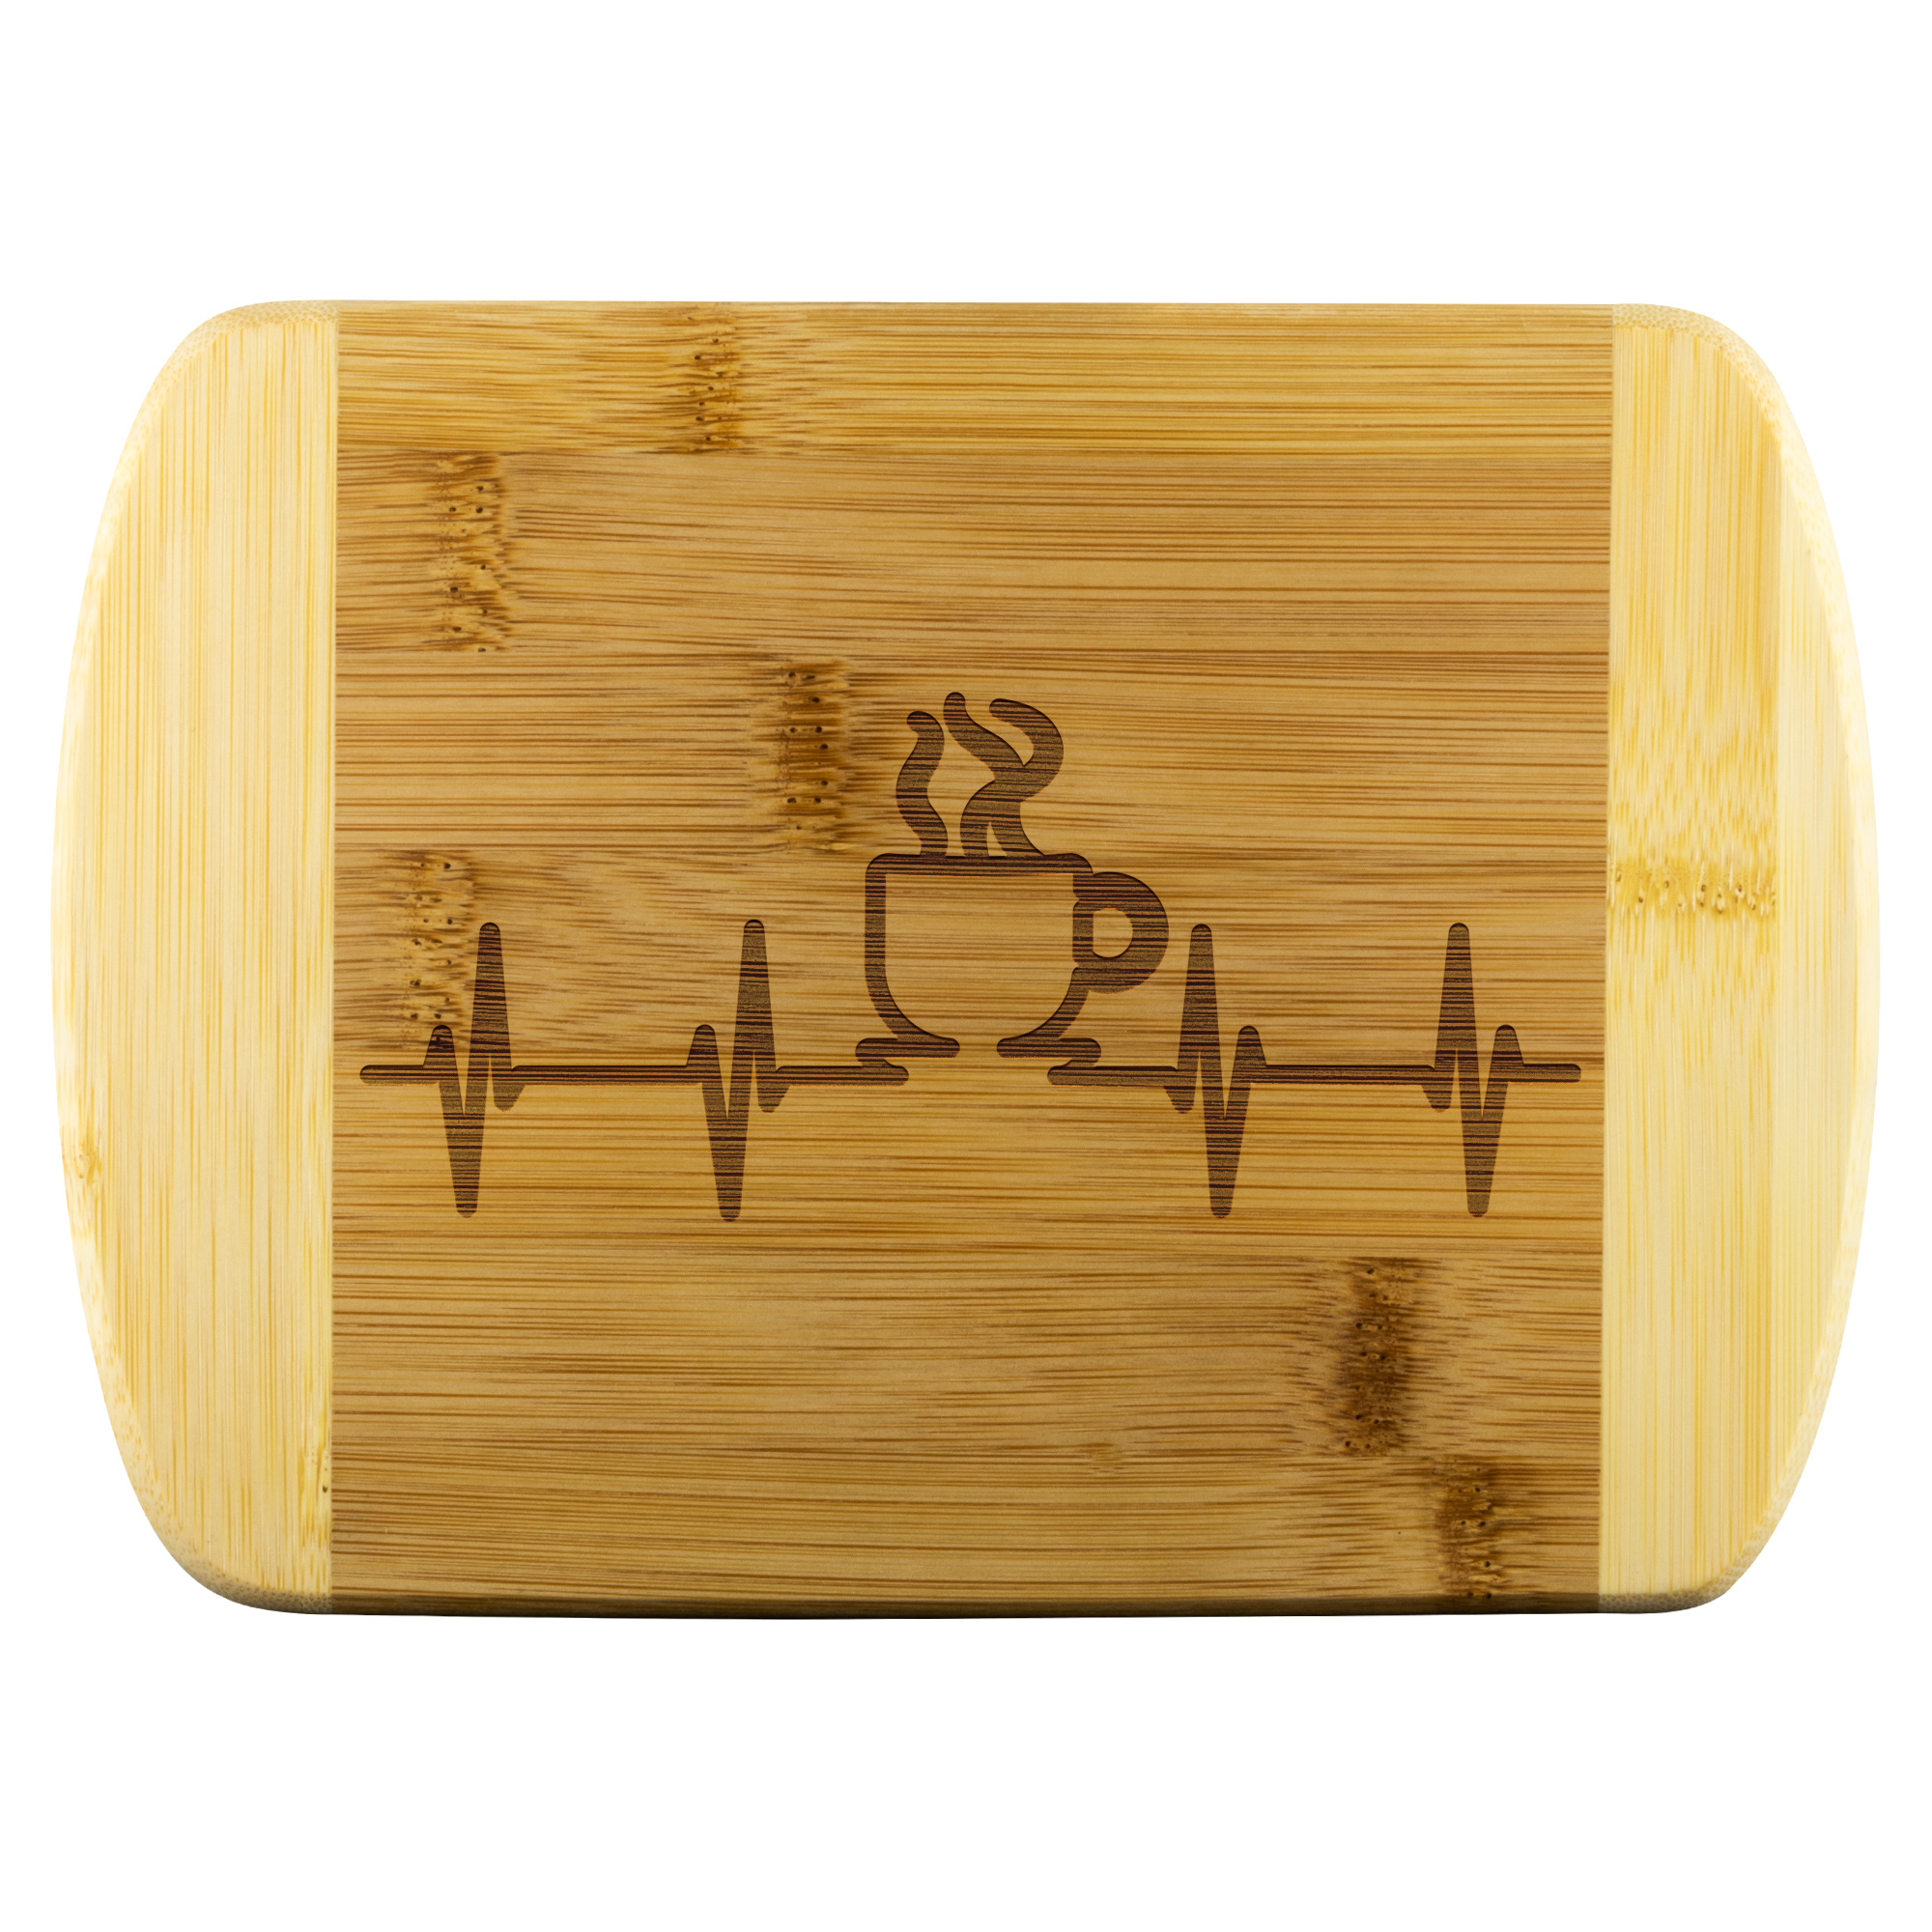 Coffee is the life line - Round Edge Wood Cutting Board